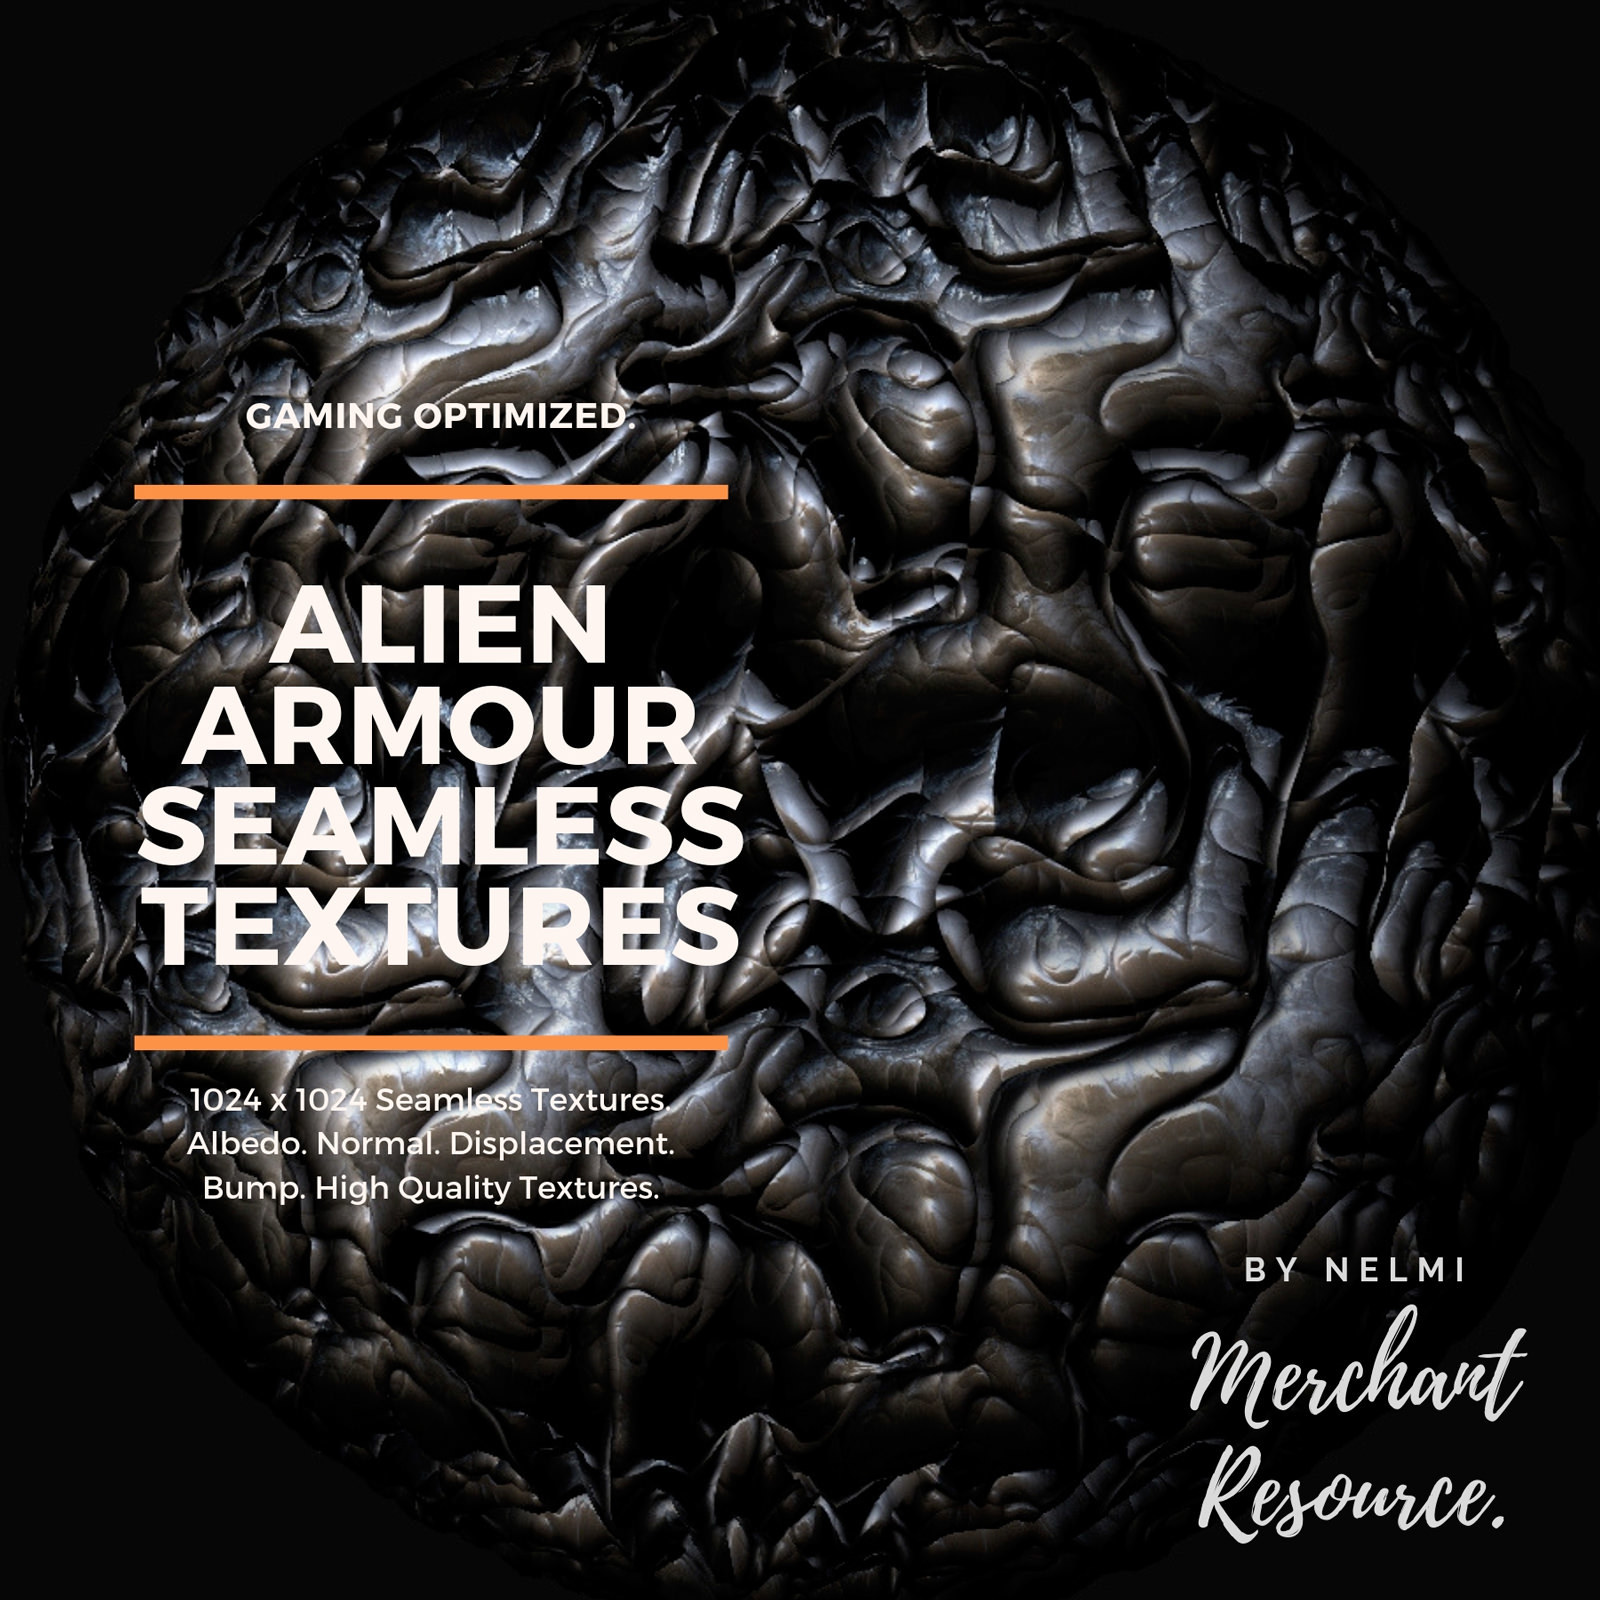 Alien Armour Seamless Textures - Merchant Resource